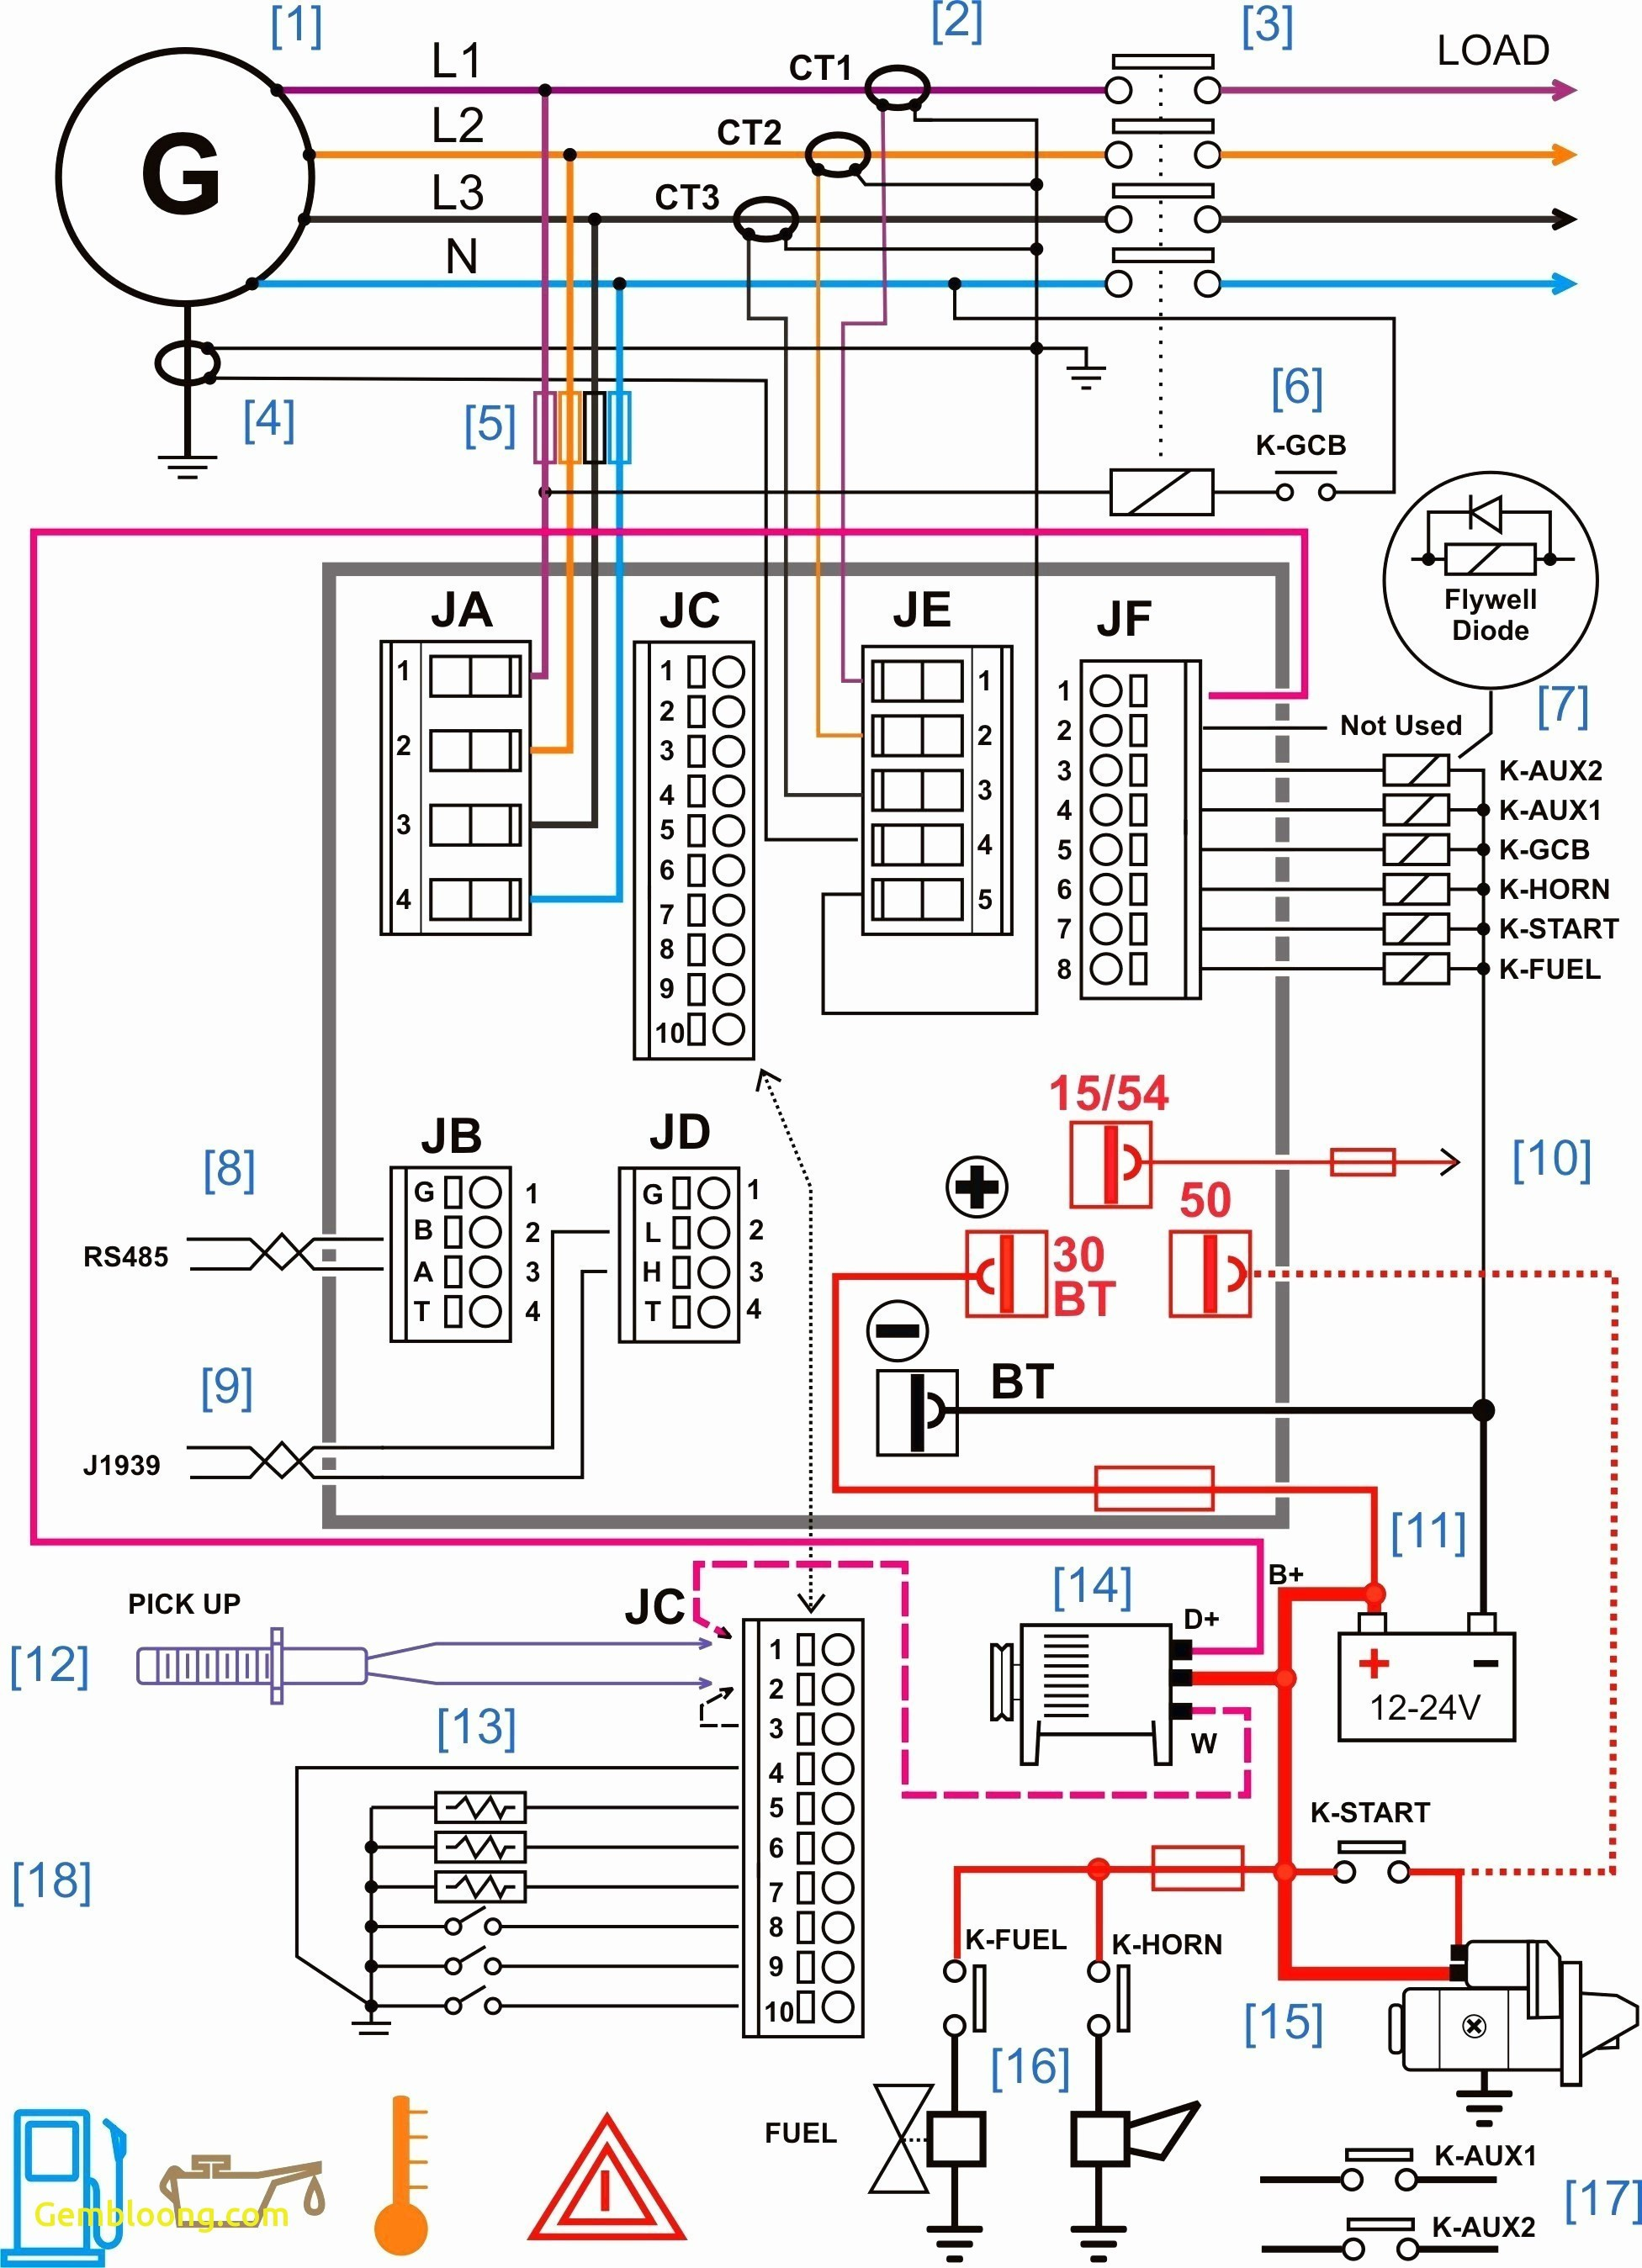 Car Alternator Diagram Wire Diagram Best Two Switch Circuit Diagram Awesome Wiring A Of Car Alternator Diagram Diagram Of G Clamp – Electrical Wiring Diagram software